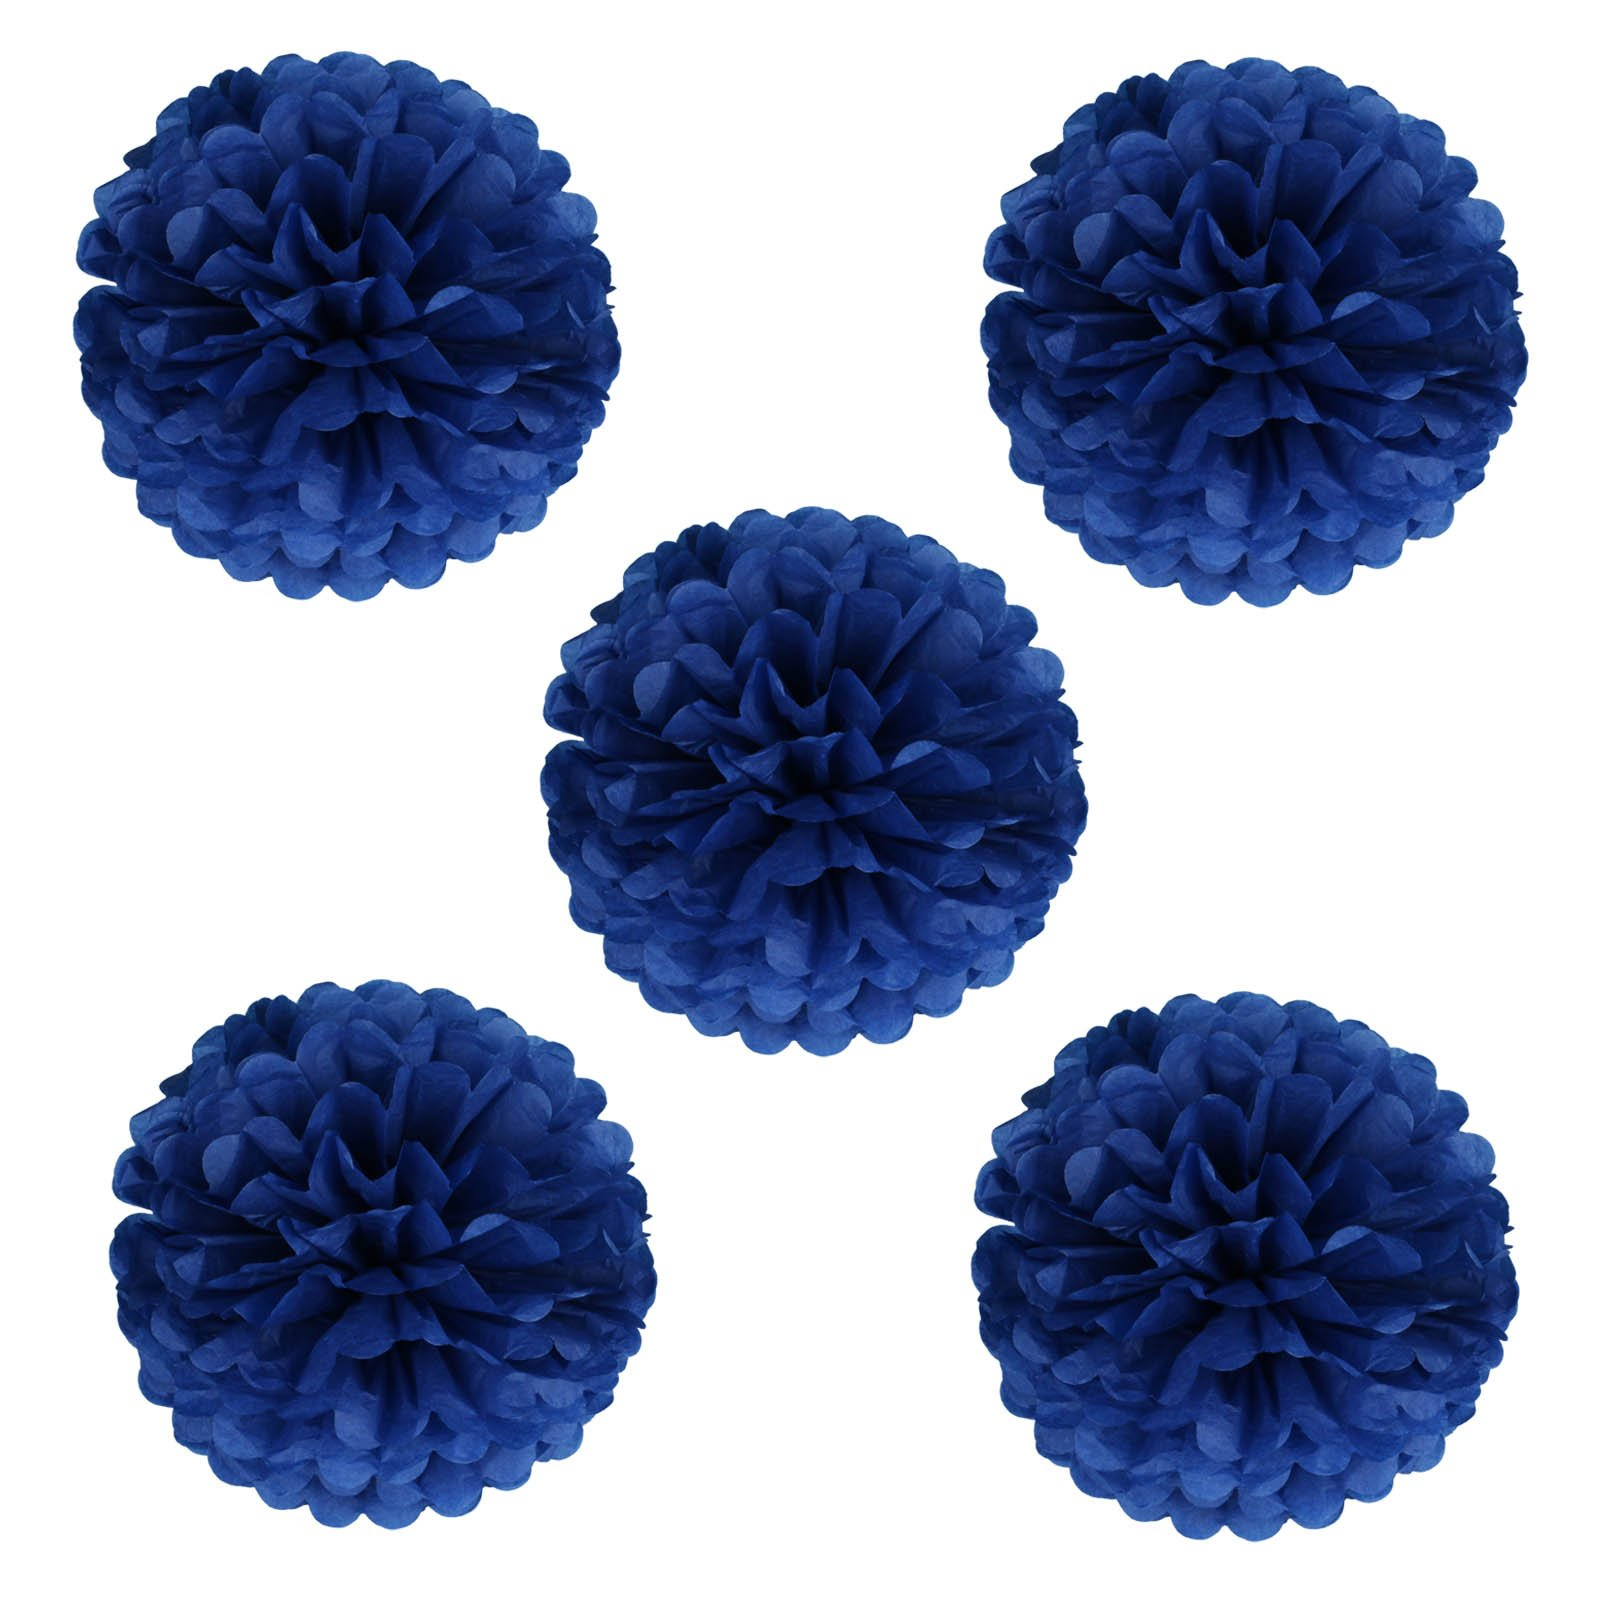 Navy wedding decorations amazon vlovelife 10 inch tissue paper pom poms garlands paper ball paper flowers for wedding party birthday junglespirit Images